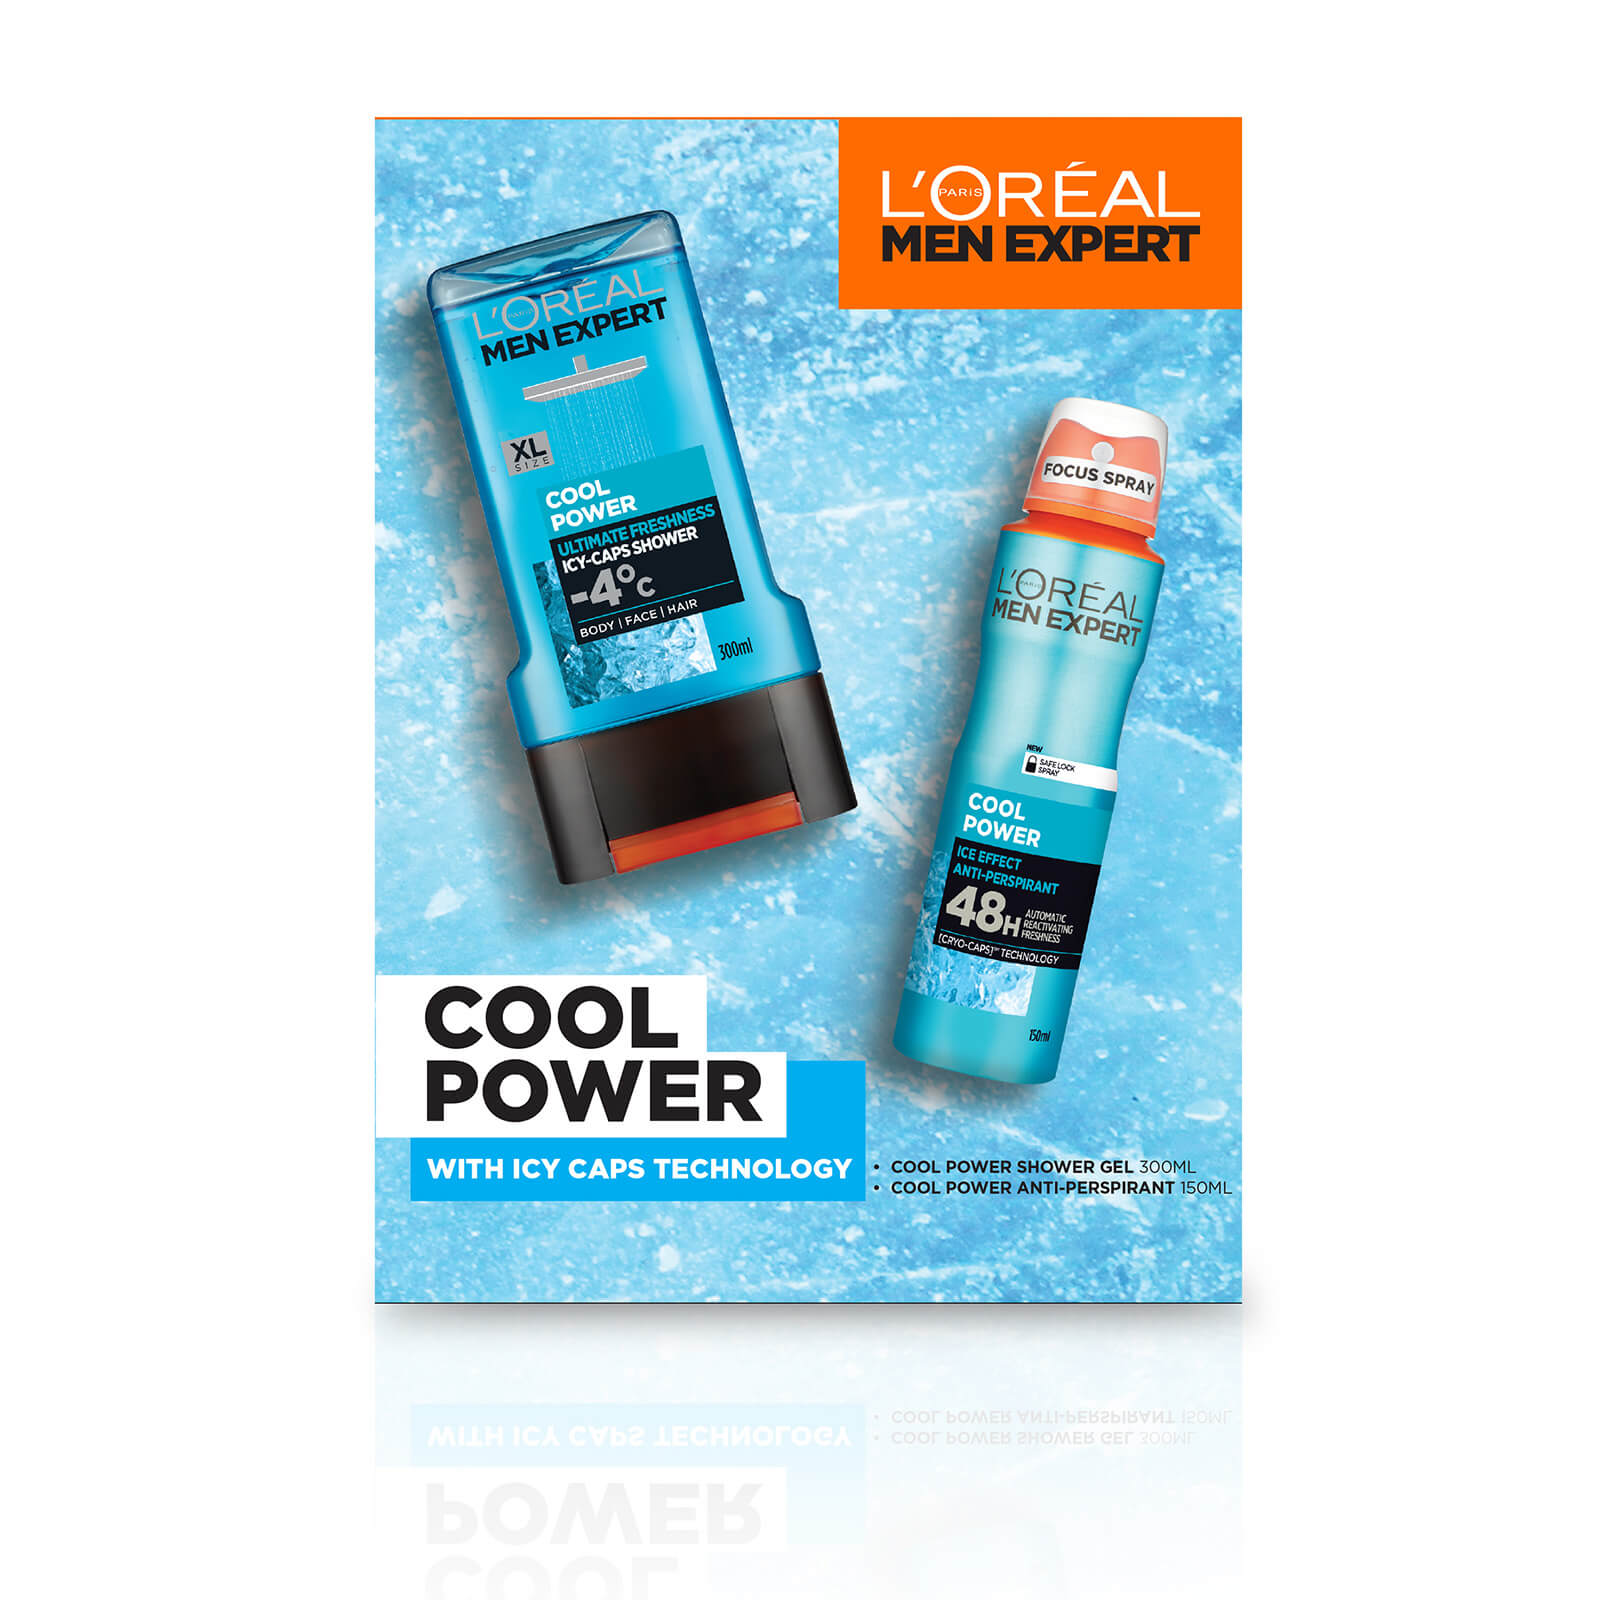 L'Oreal Men Expert Cool Power 2 Piece Gift Set for Him (Worth £10.00)